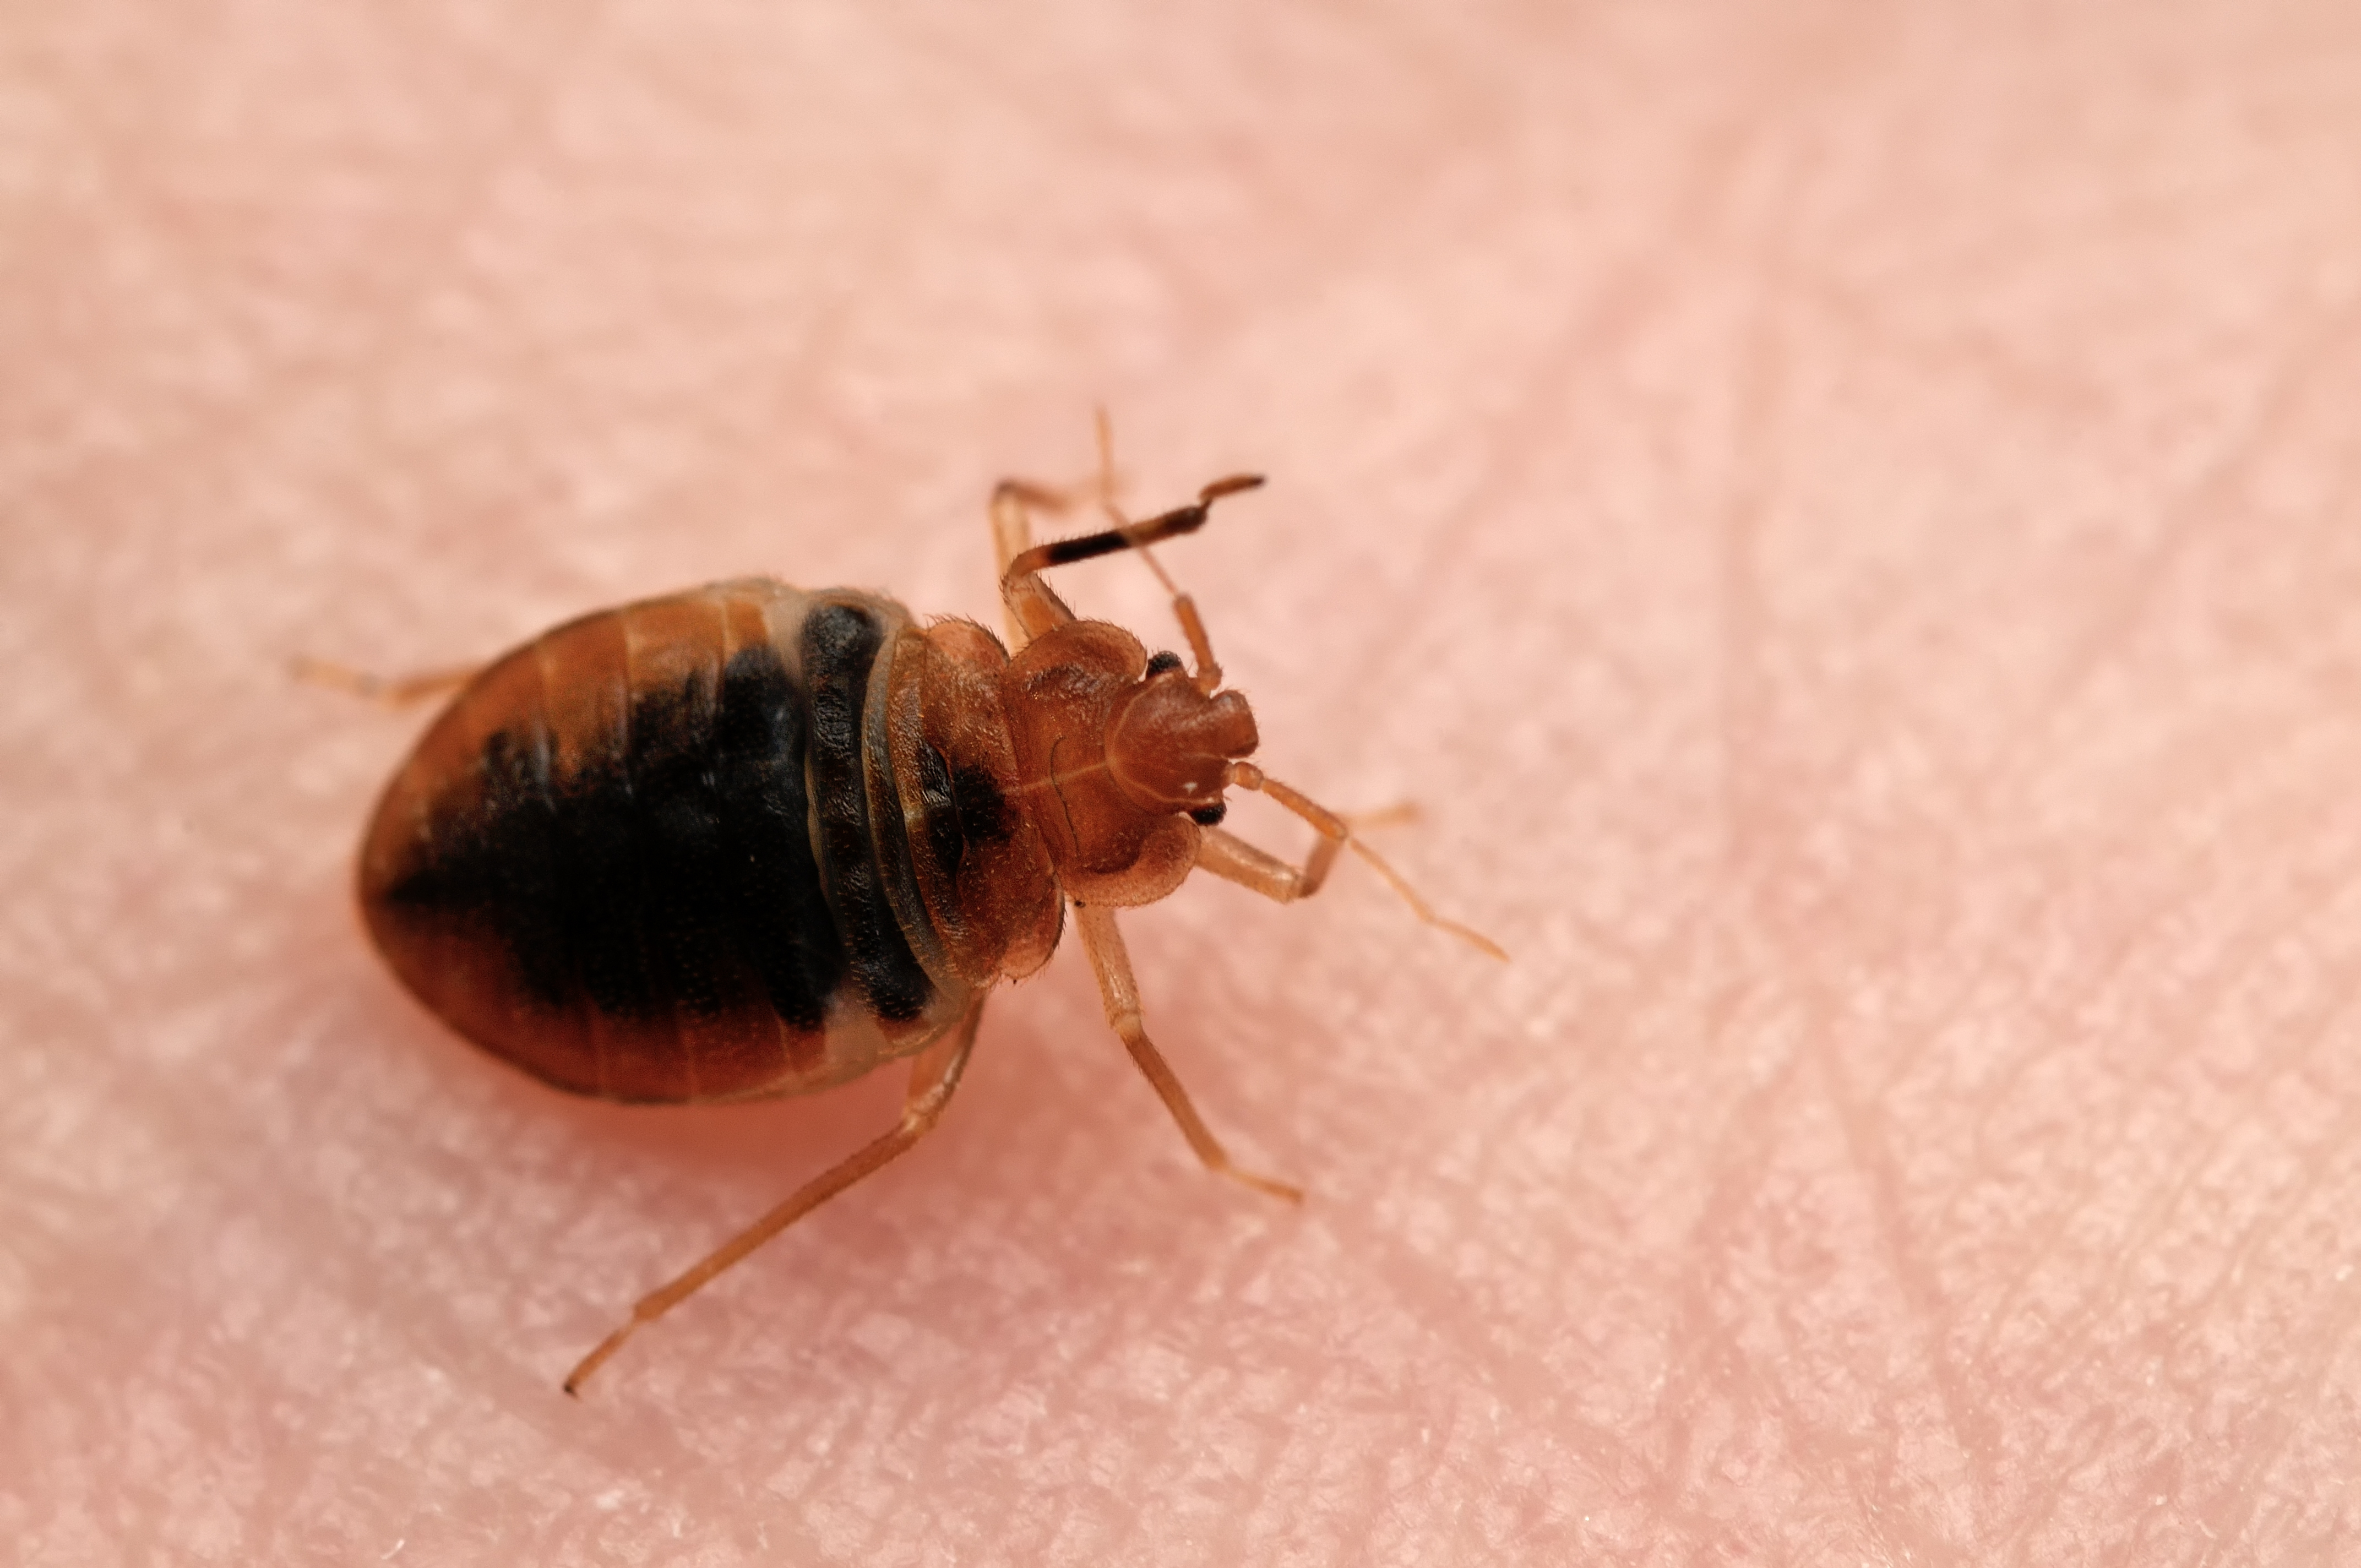 Bed bug on human skin.